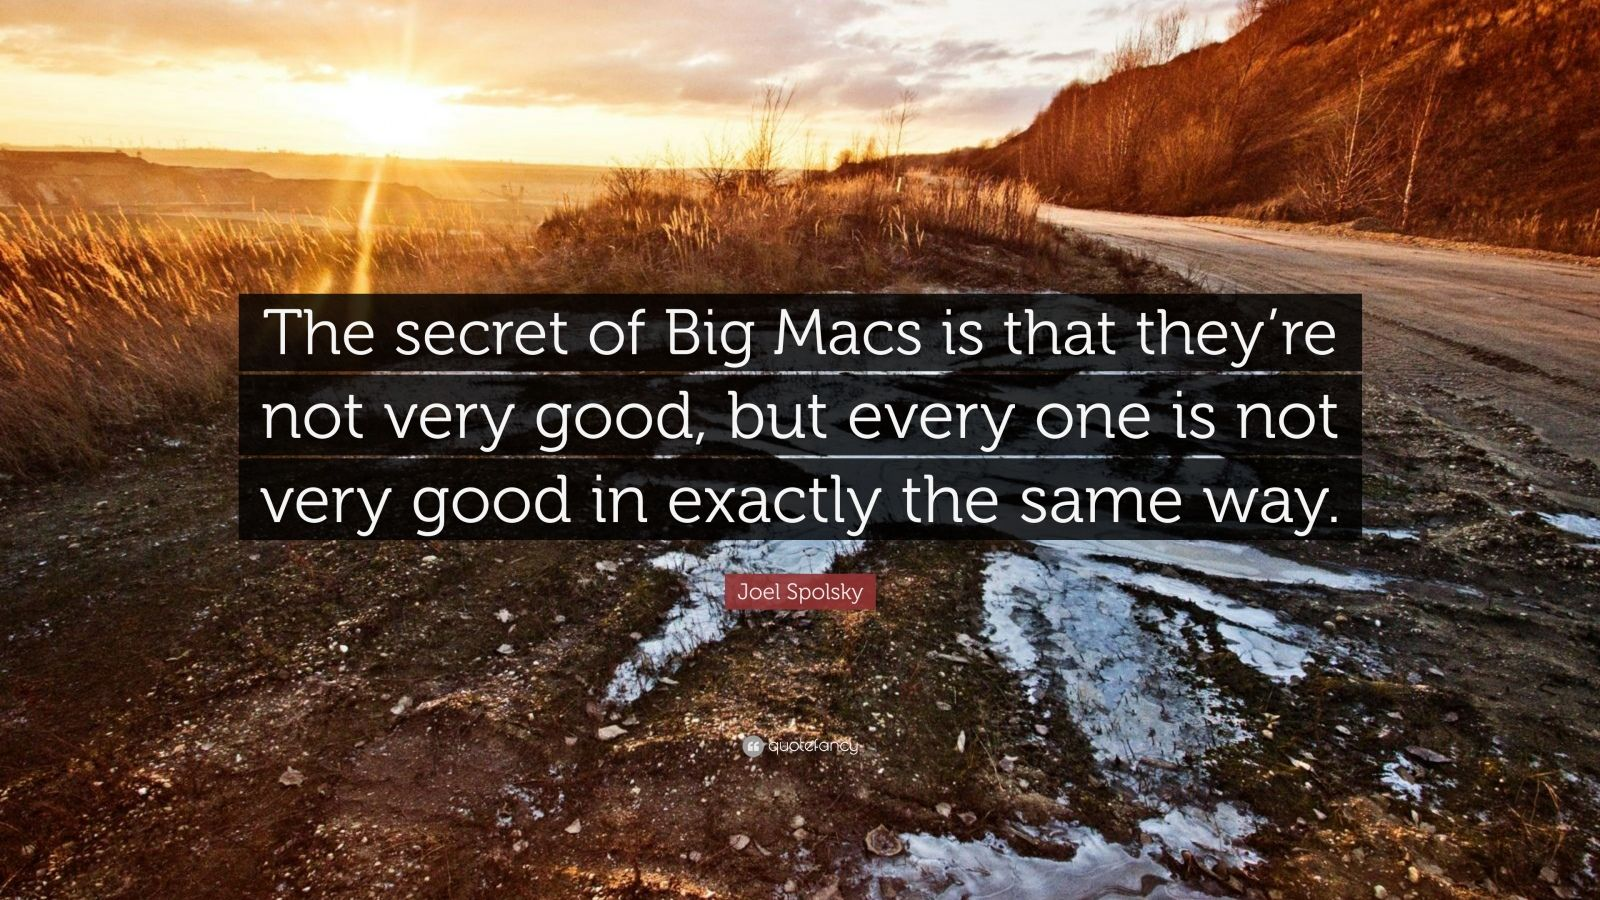 """Joel Spolsky Quote: """"The secret of Big Macs is that they're not very good, but every one is not very good in exactly the same way."""""""